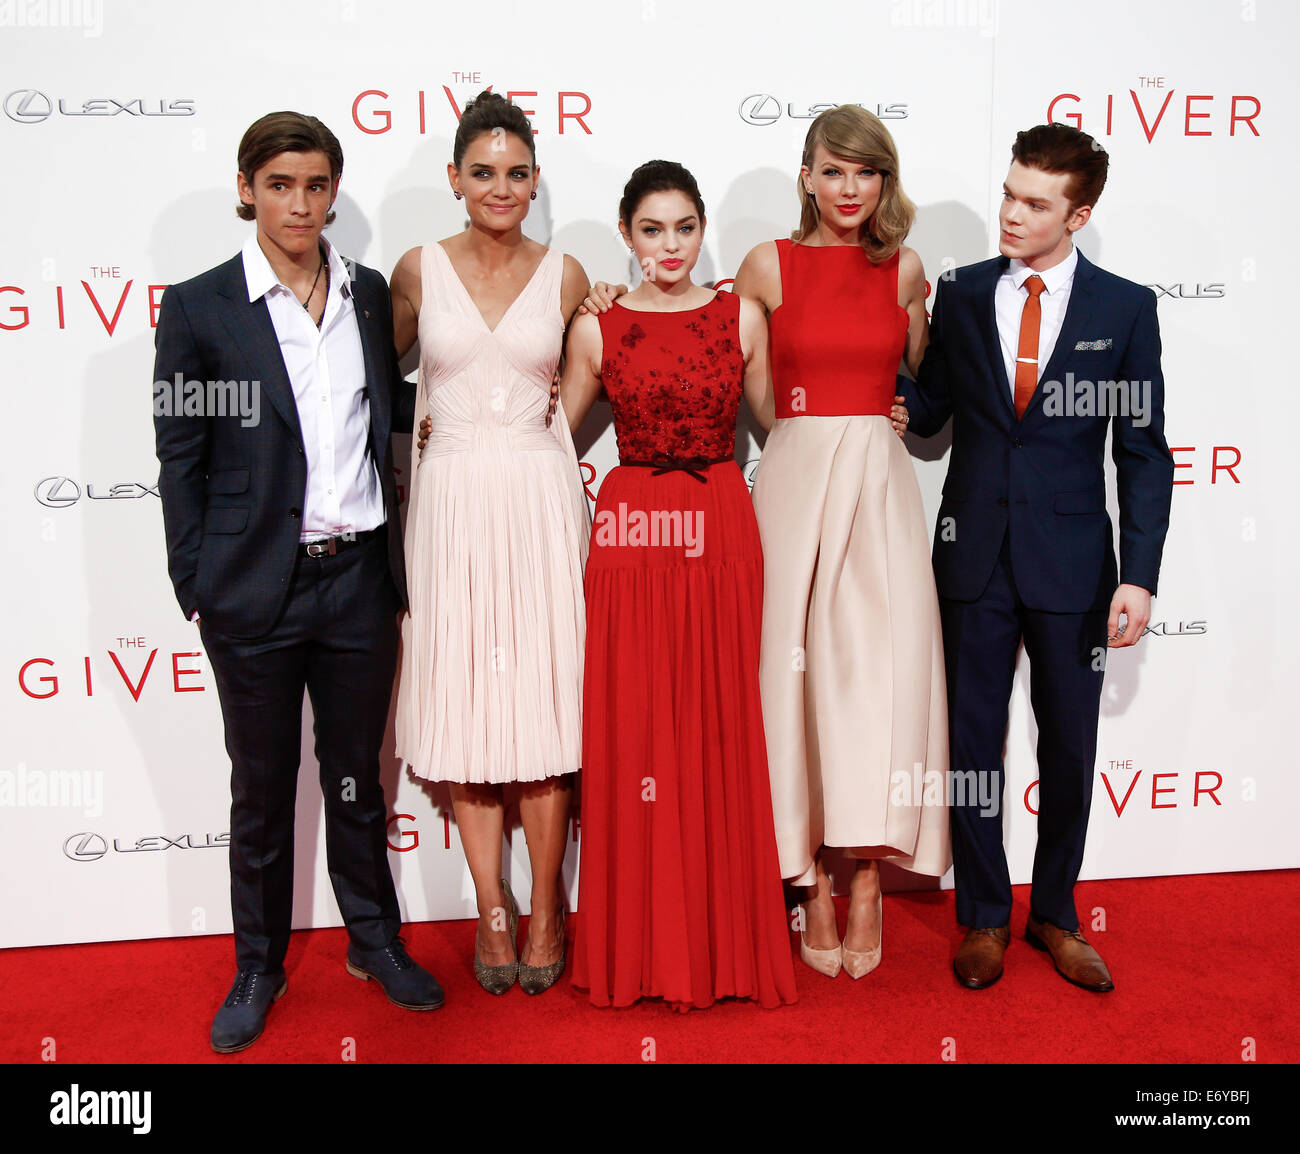 (L-R) Actors Brenton Thwaites, Katie Holmes, Odeya Rush, Taylor Swift and Cameron Monaghan attend the premiere of - Stock Image